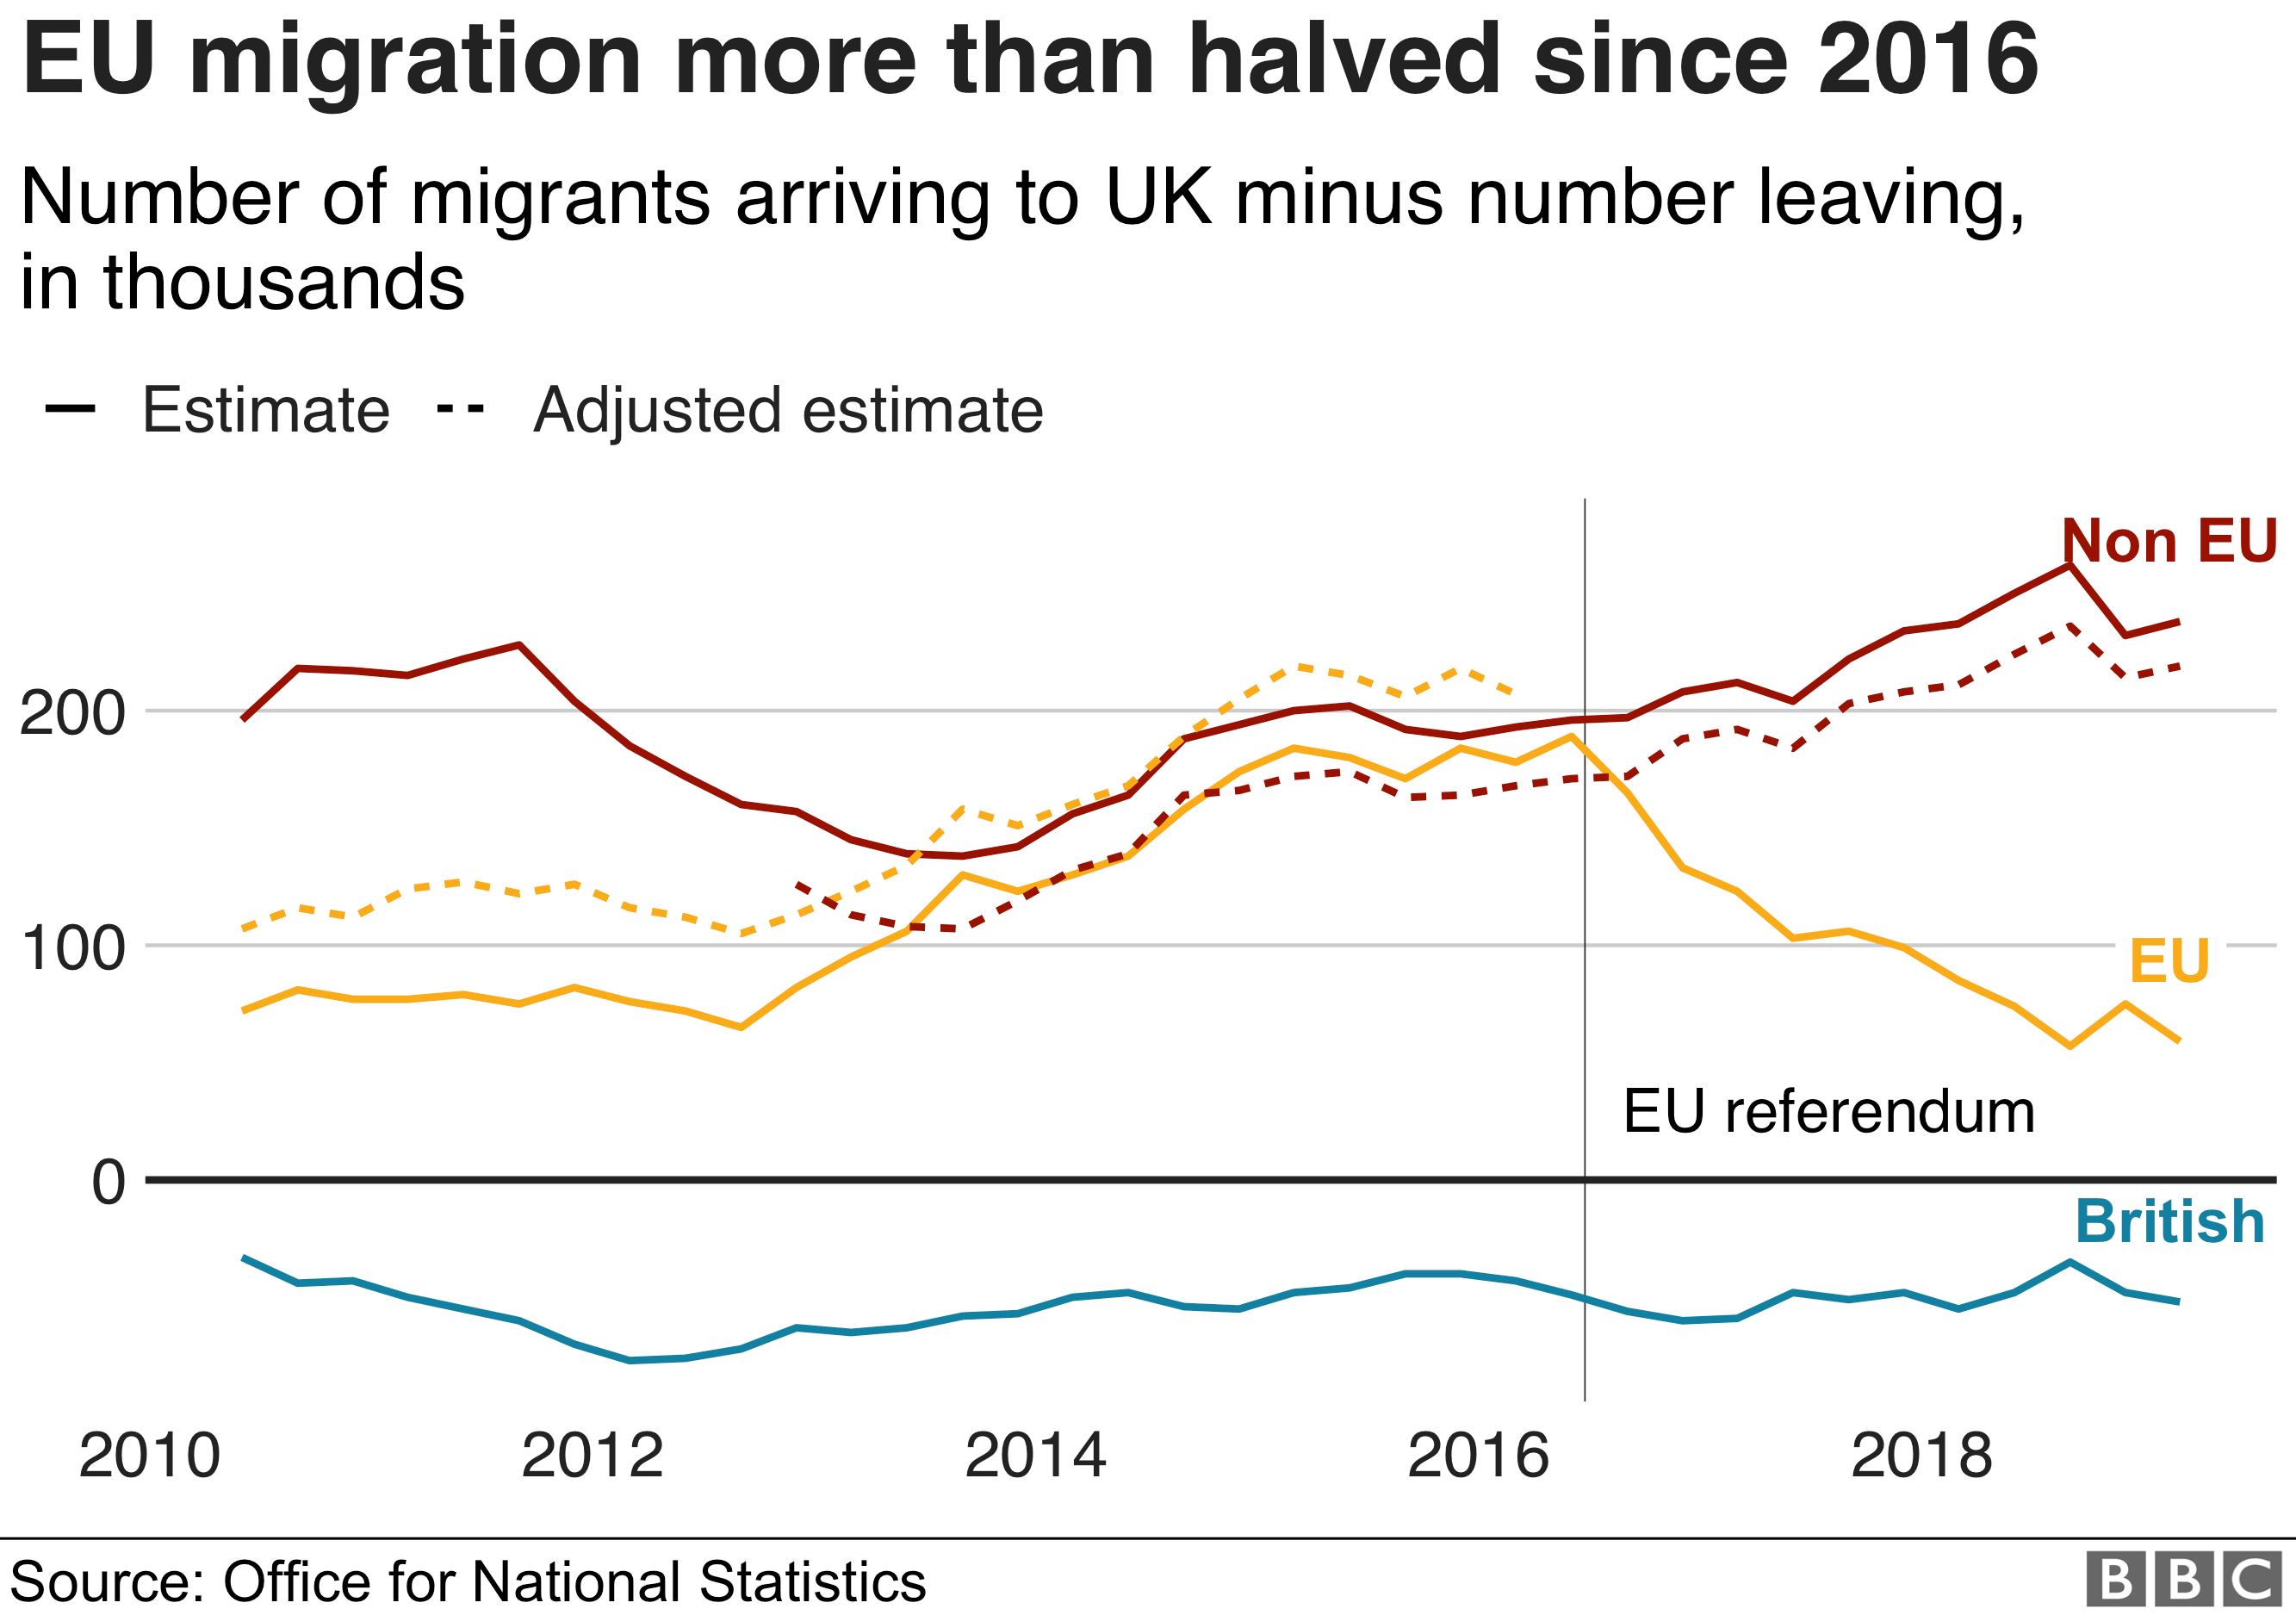 Graph showing the changes in EU migration since 2016